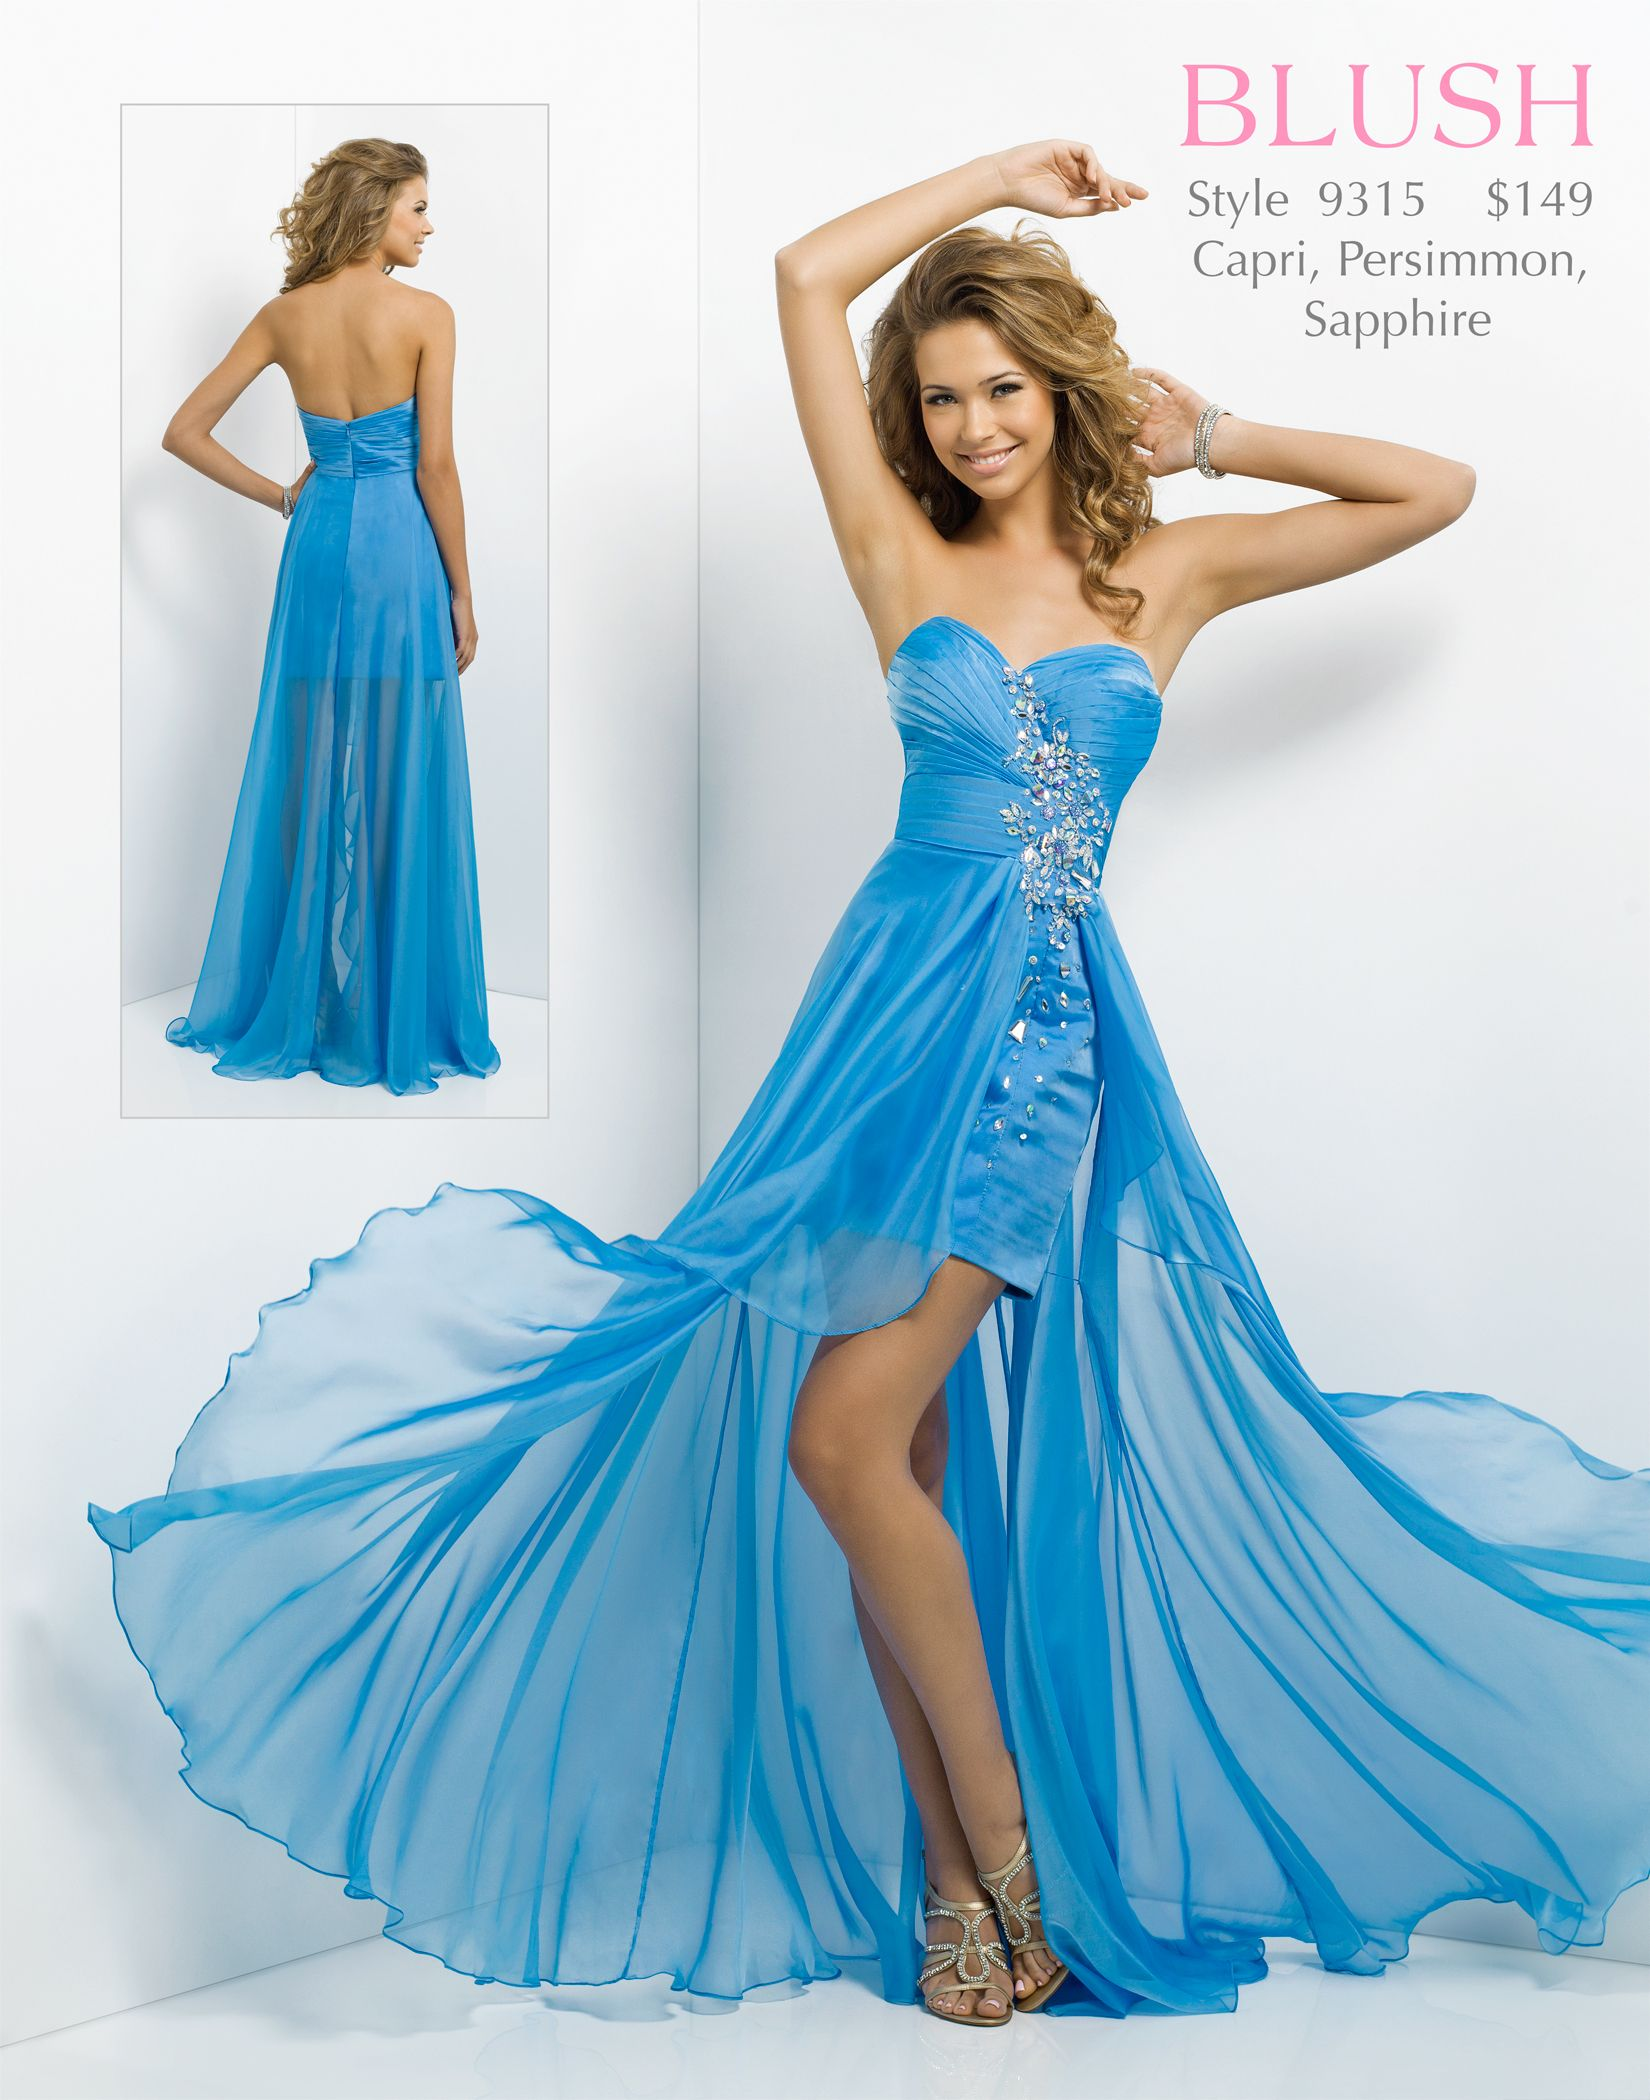 FORMALS | FORMALS -BALL GOWNS | Pinterest | Formal, Ball gowns and Gowns